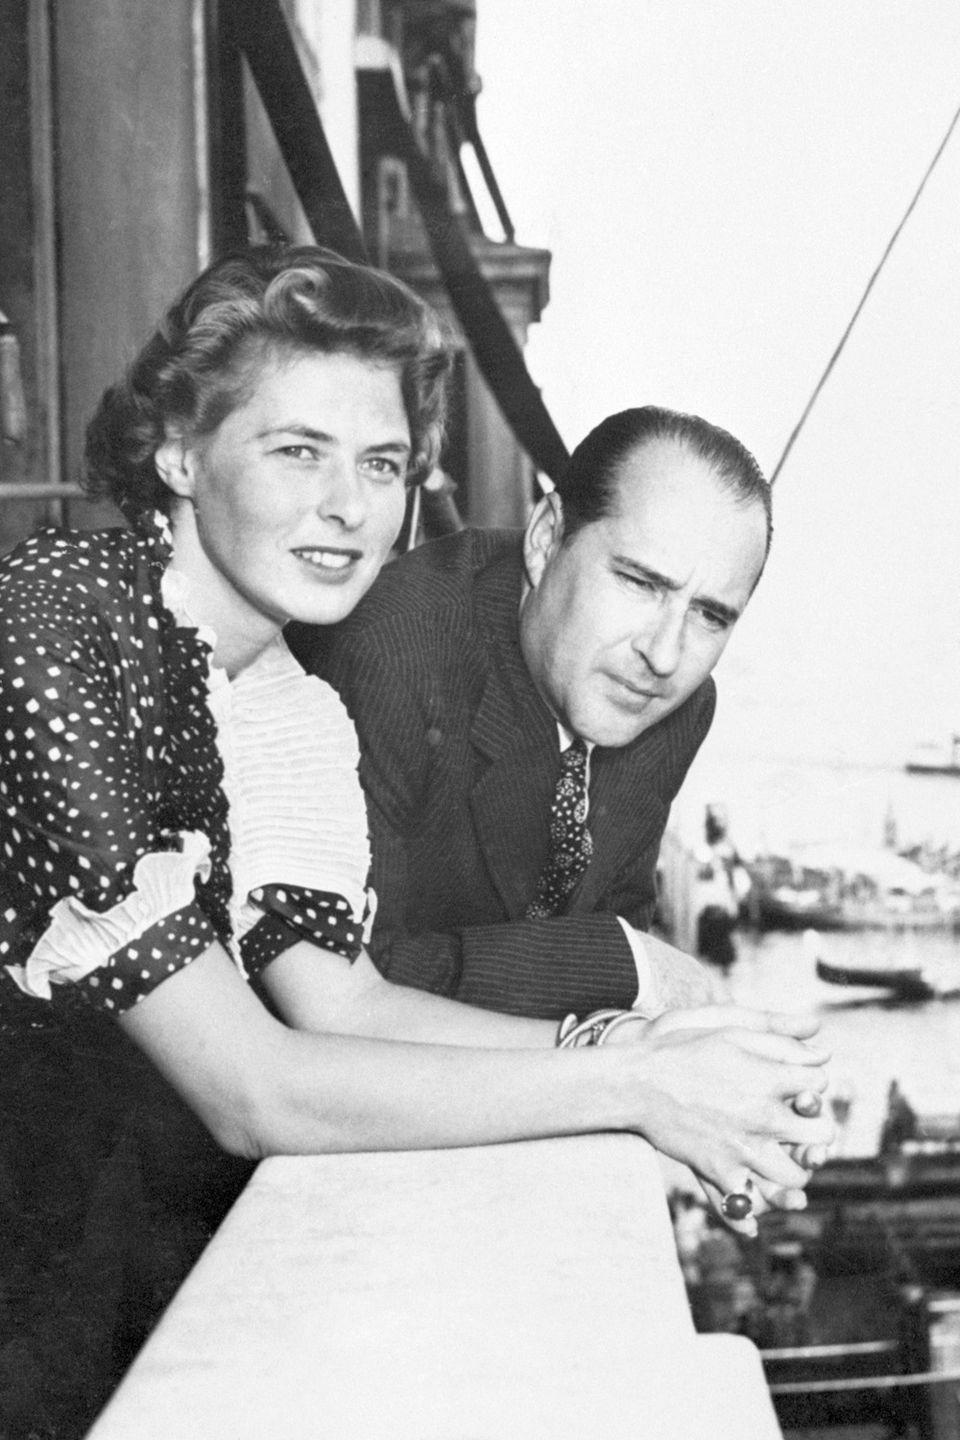 "<p>Back in the '40s, the Italian director received a letter from Bergman suggesting that their <a href=""https://www.marieclaire.com/celebrity/news/g2994/scandalous-hollywood-flings/?slide=2"" rel=""nofollow noopener"" target=""_blank"" data-ylk=""slk:work should be more flirty"" class=""link rapid-noclick-resp"">work should be more flirty</a>. Despite being married to other people, their affair started soon after she was cast in his film <em>Stromboli</em>. </p>"